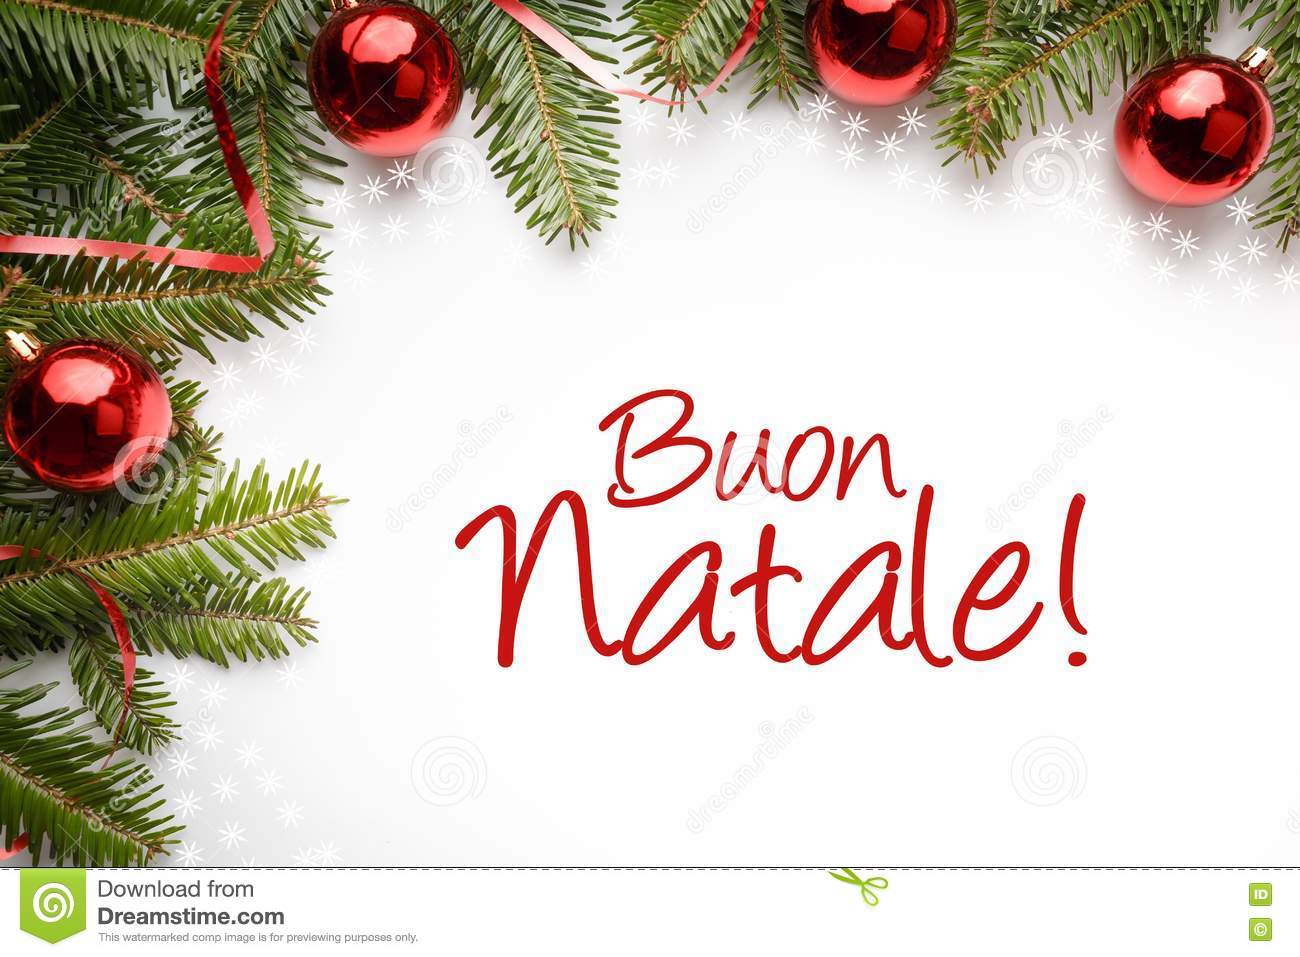 Christmas Decoration Background With Christmas Greeting In Italian